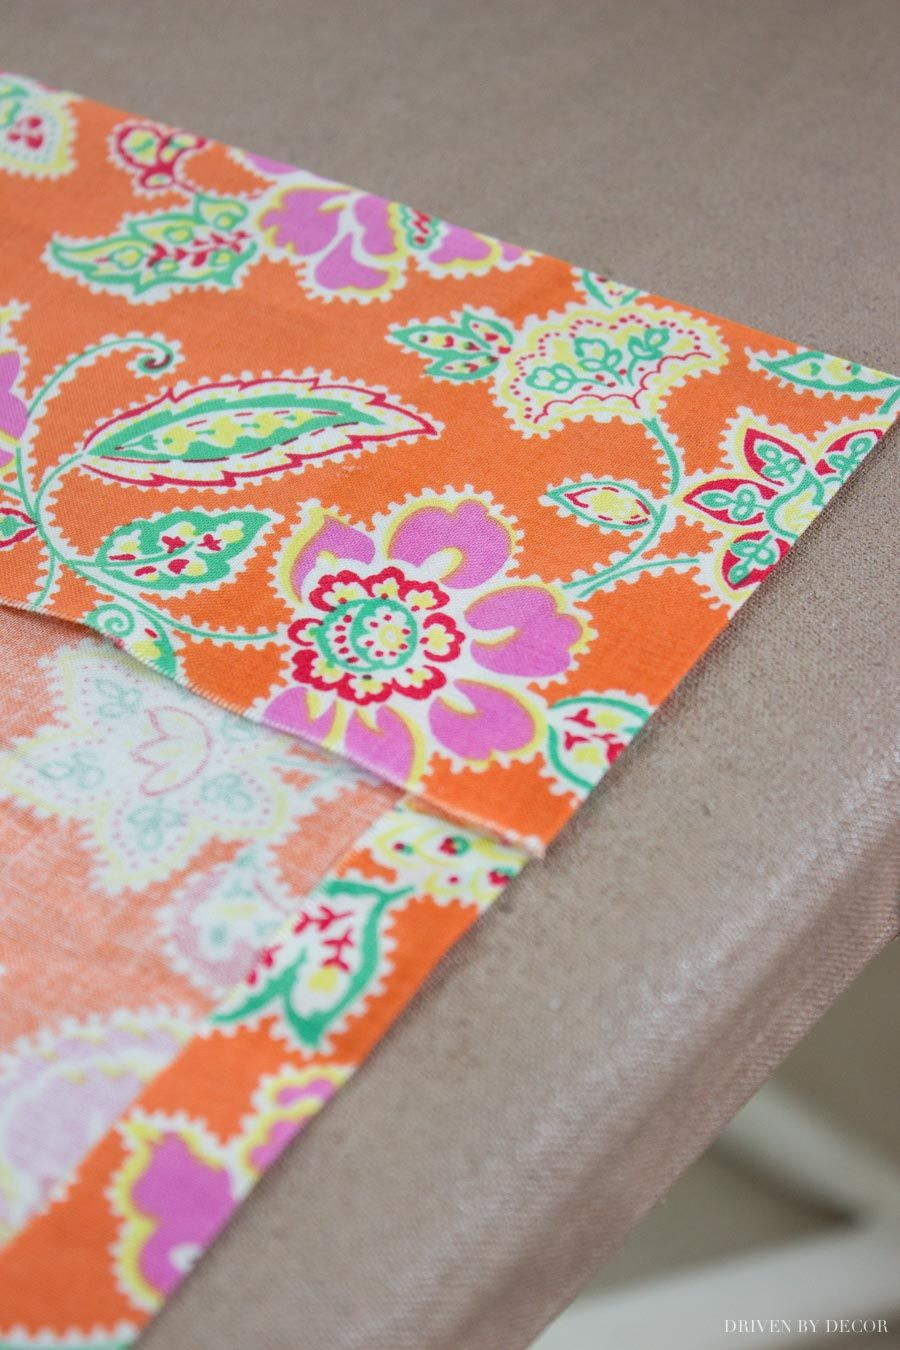 How to Make Fabric Book Covers (Without Sewing!) Fabric